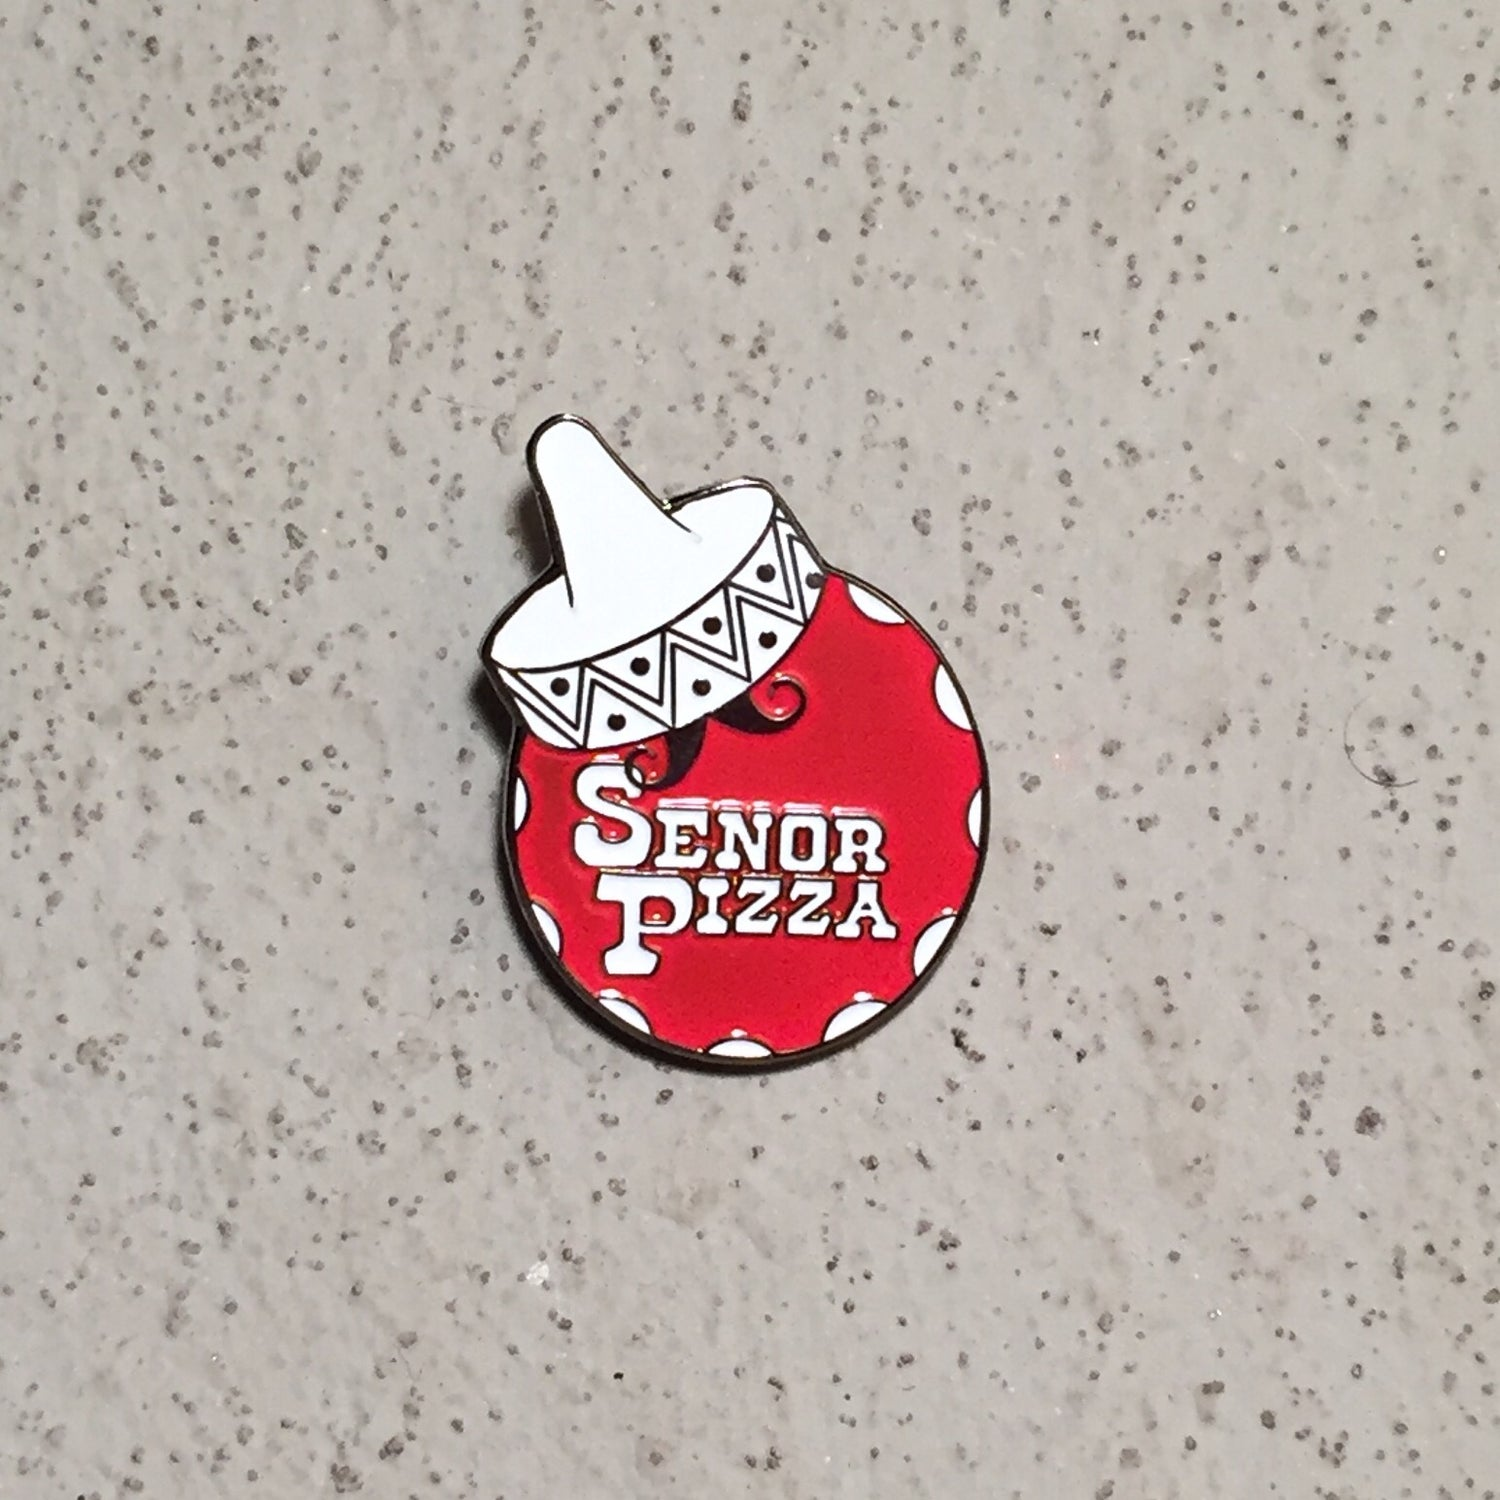 Image of Señor Pizza